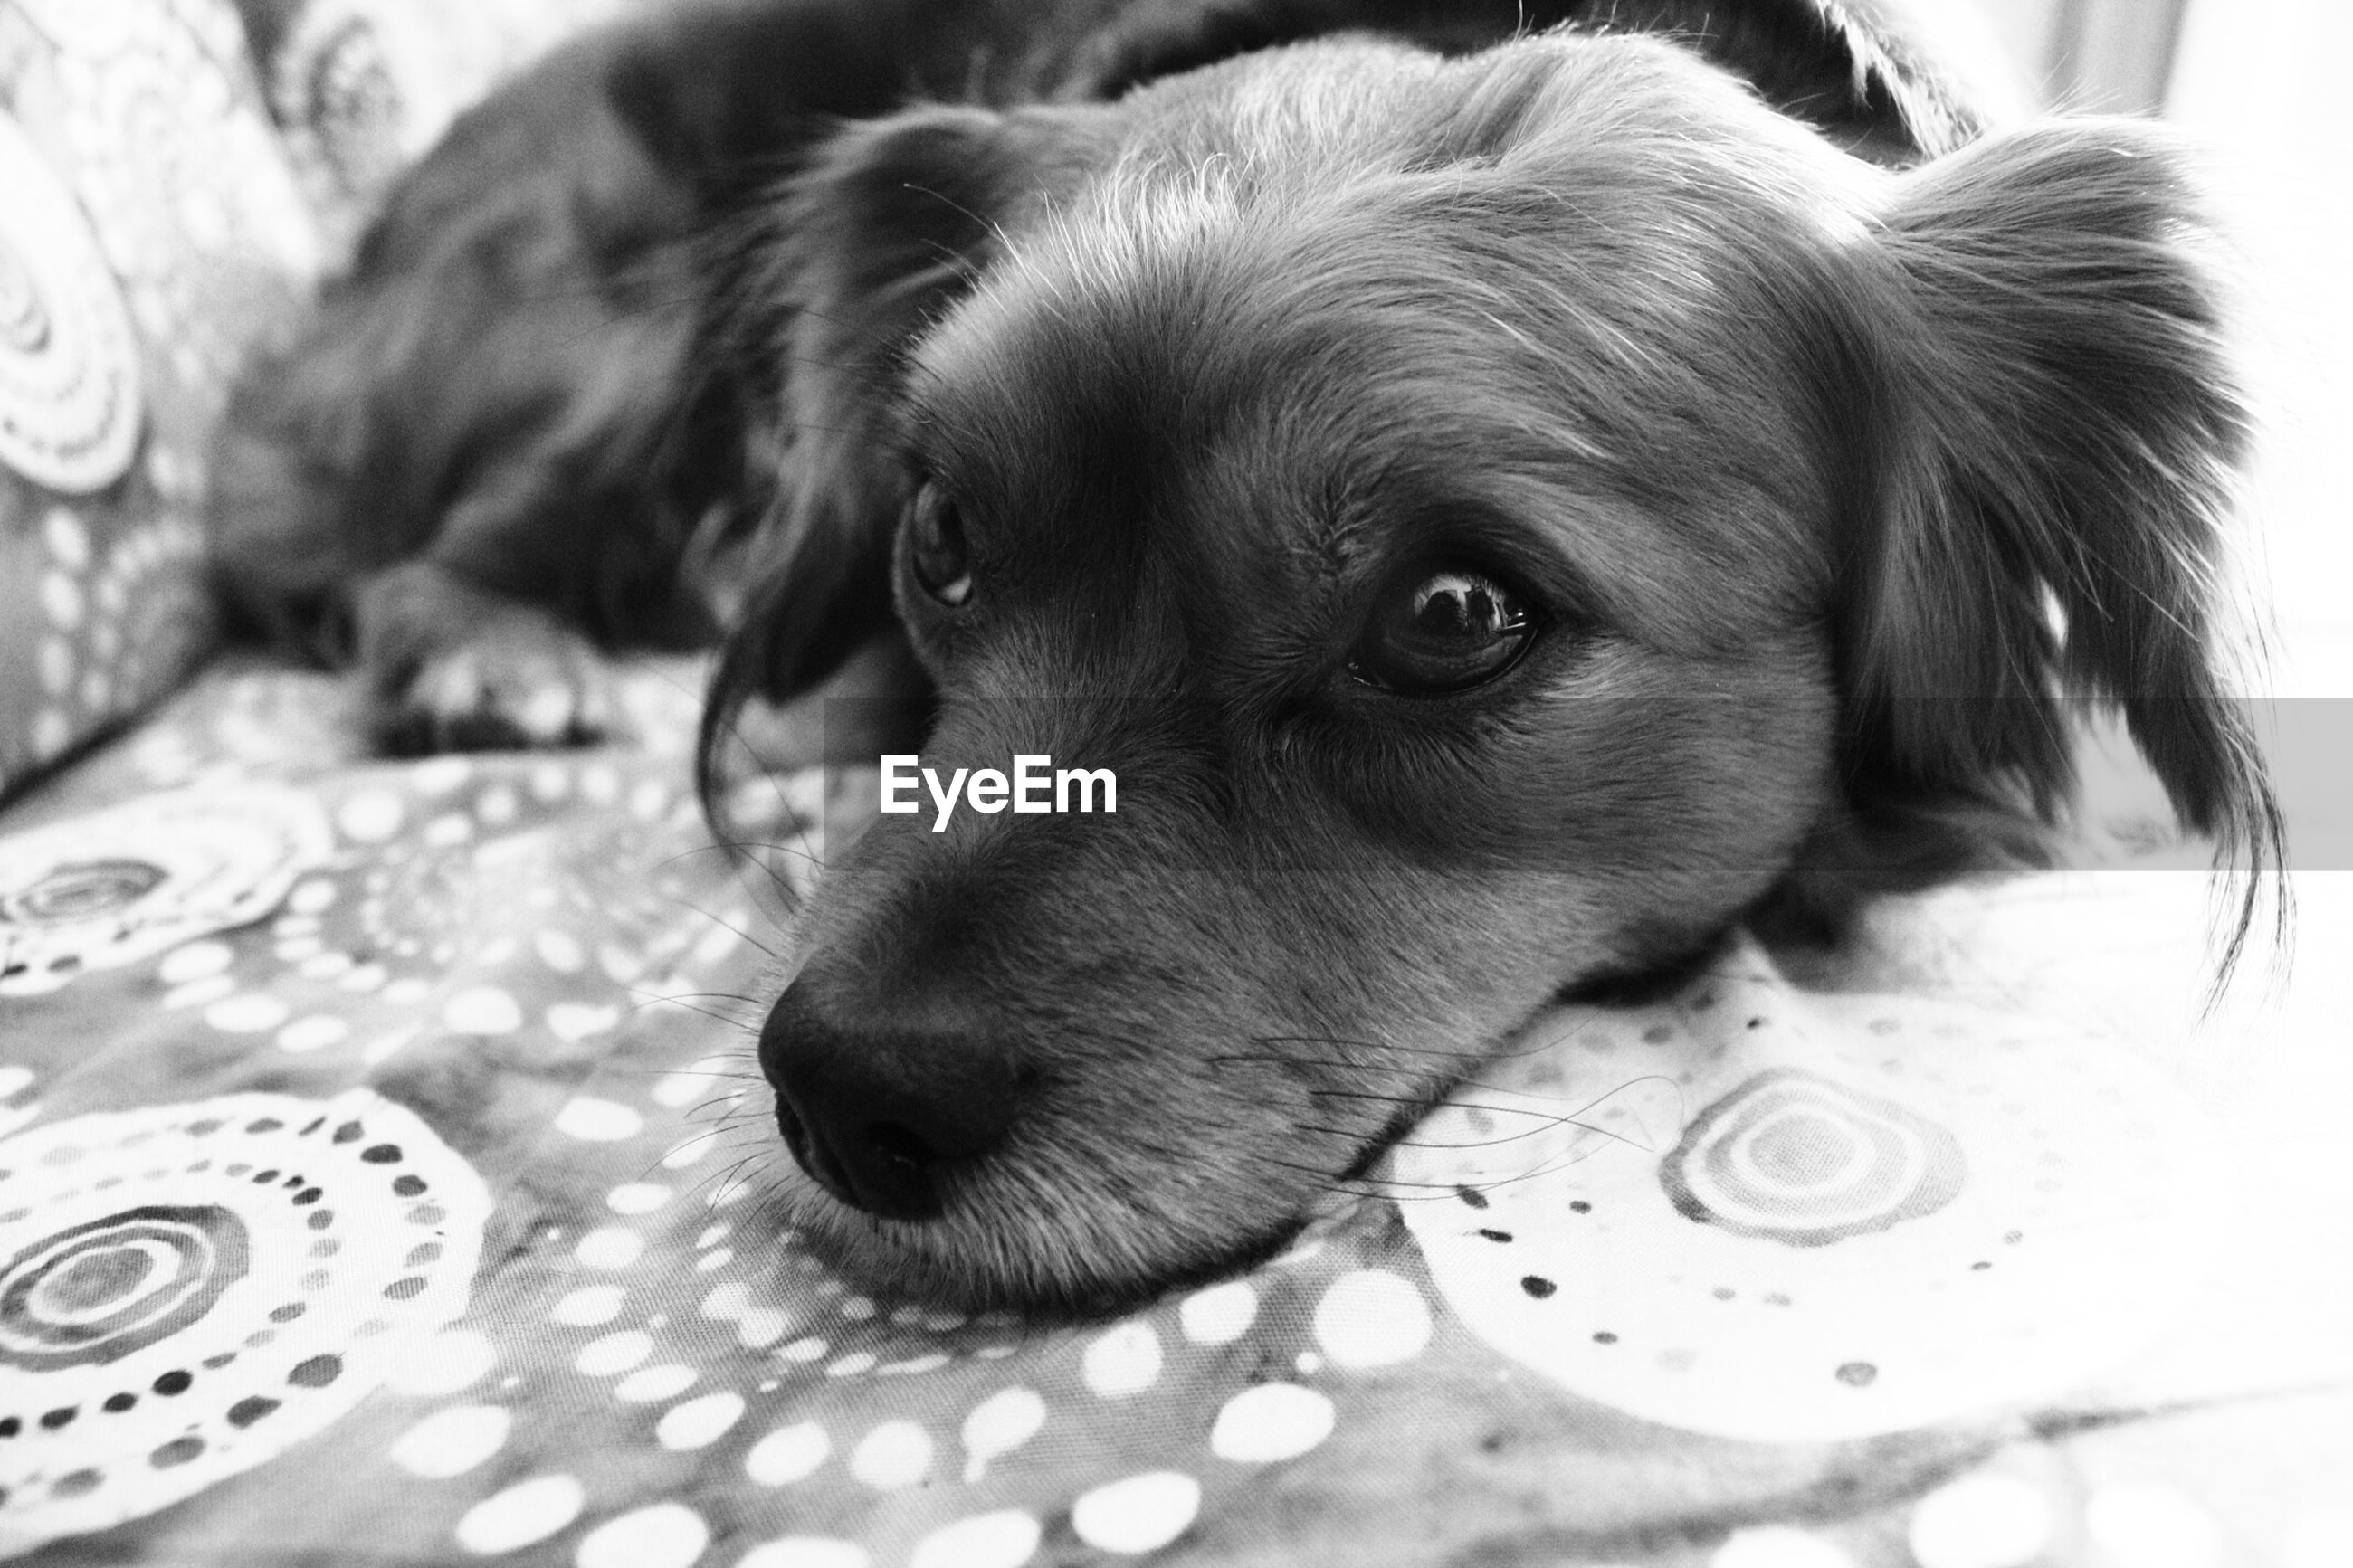 pets, domestic animals, dog, animal themes, one animal, mammal, indoors, close-up, animal head, relaxation, home interior, looking at camera, lying down, no people, portrait, animal body part, high angle view, selective focus, resting, water